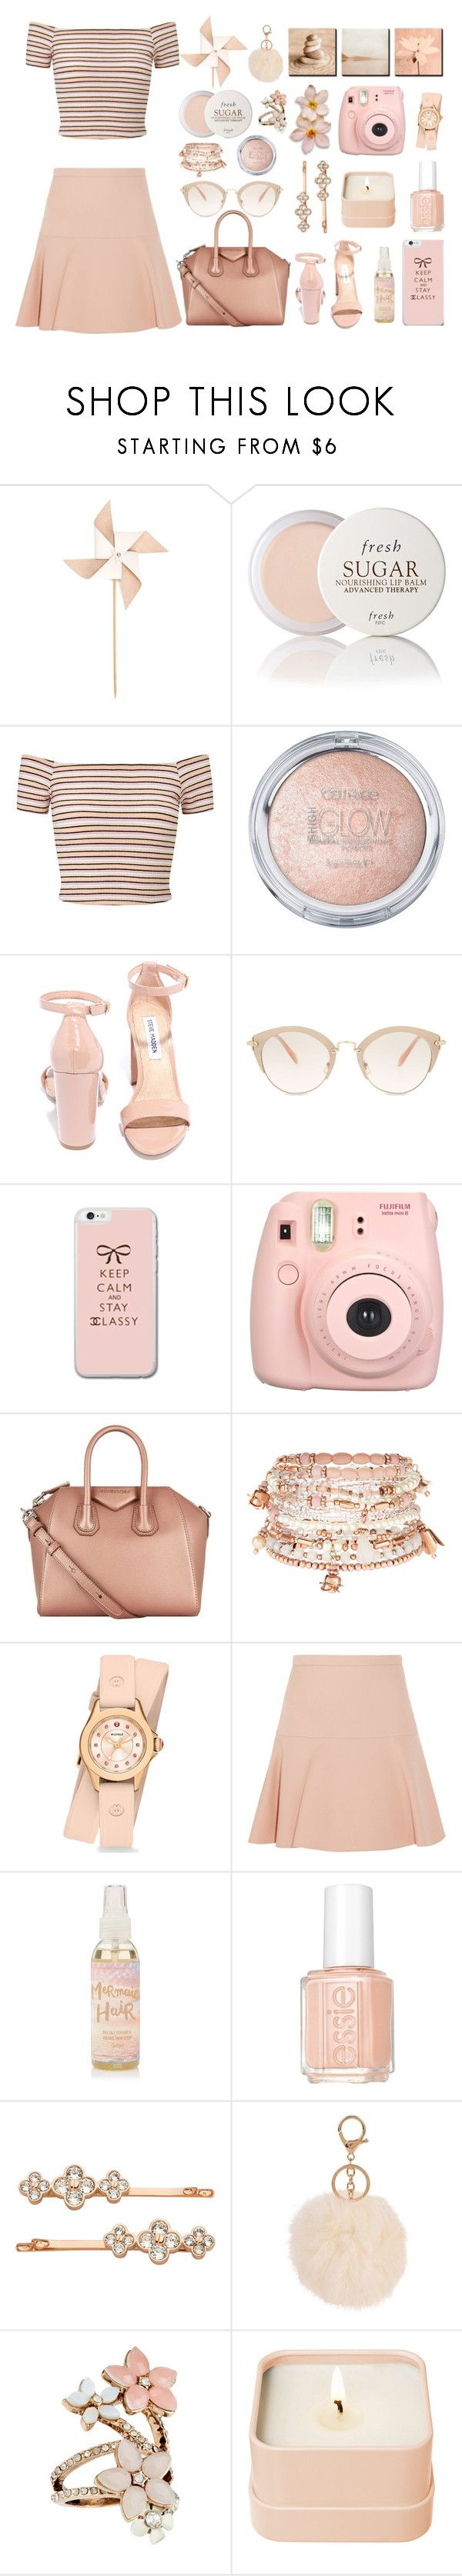 """Eunoia"" by mariahedanne ❤ liked on Polyvore featuring Hender Scheme, Fresh, Miss Selfridge, Steve Madden, Miu Miu, Fujifilm, Givenchy, Accessorize, Michele and Essie"